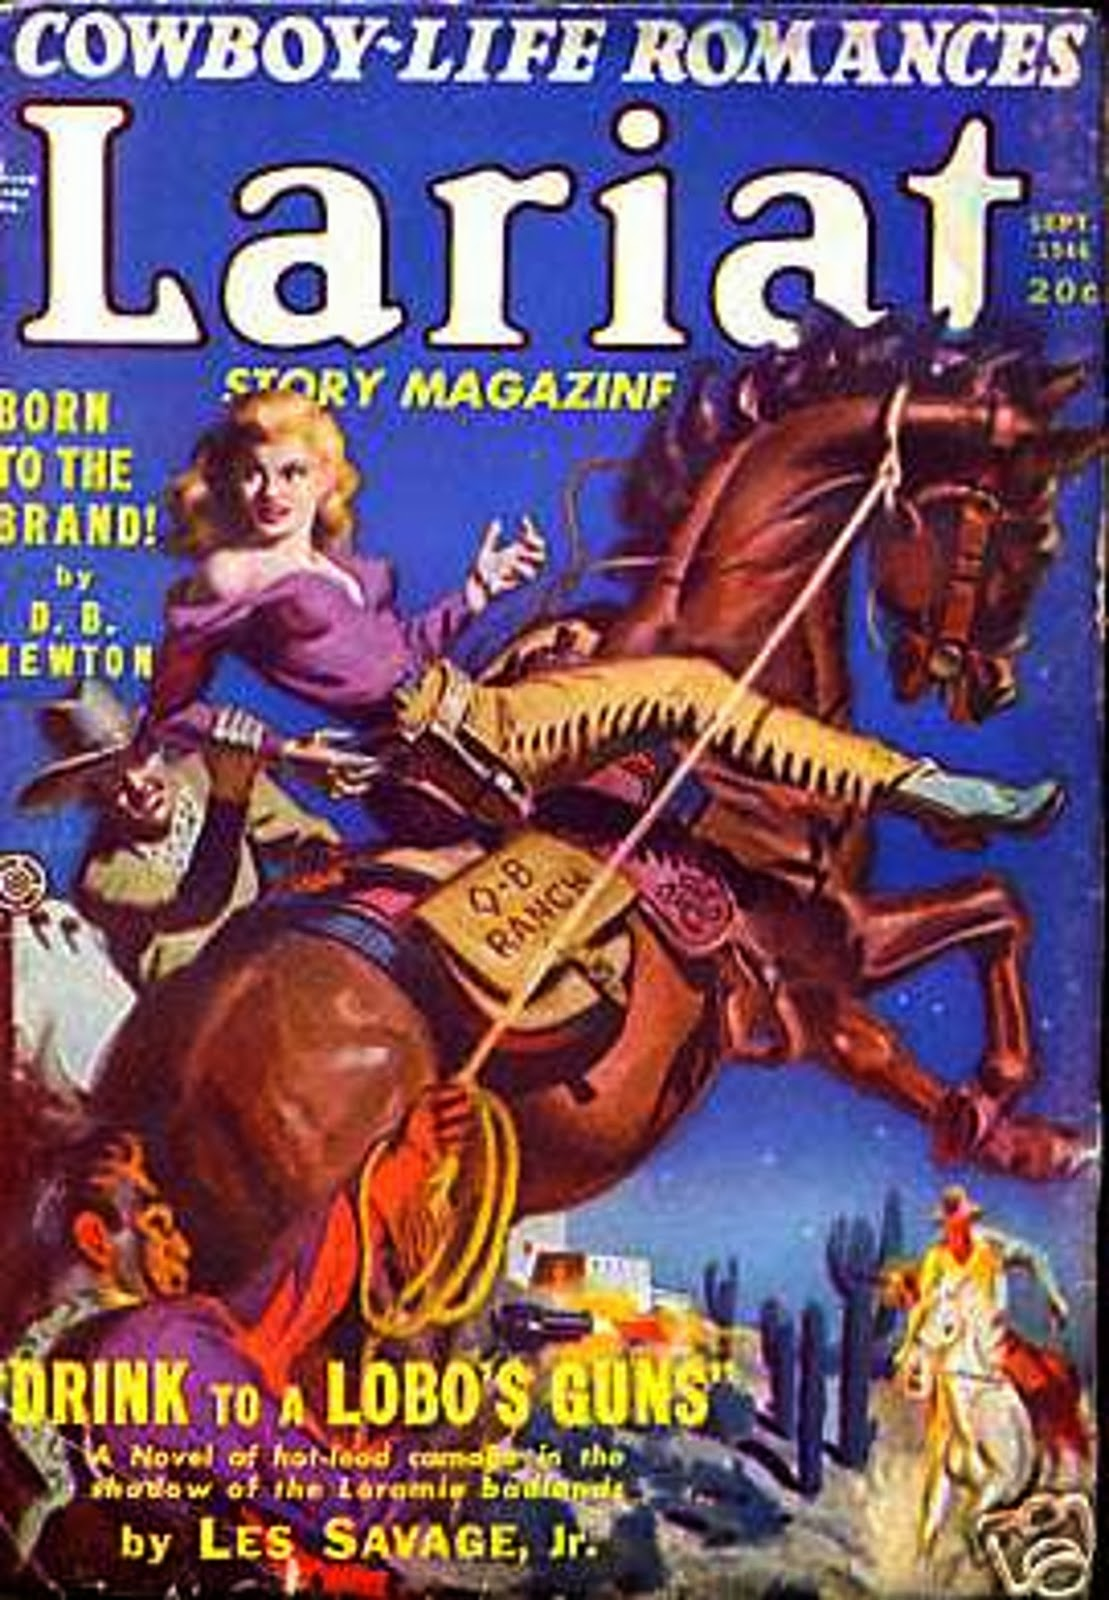 Rough Edges: Saturday Morning Western Pulp: Lariat Story